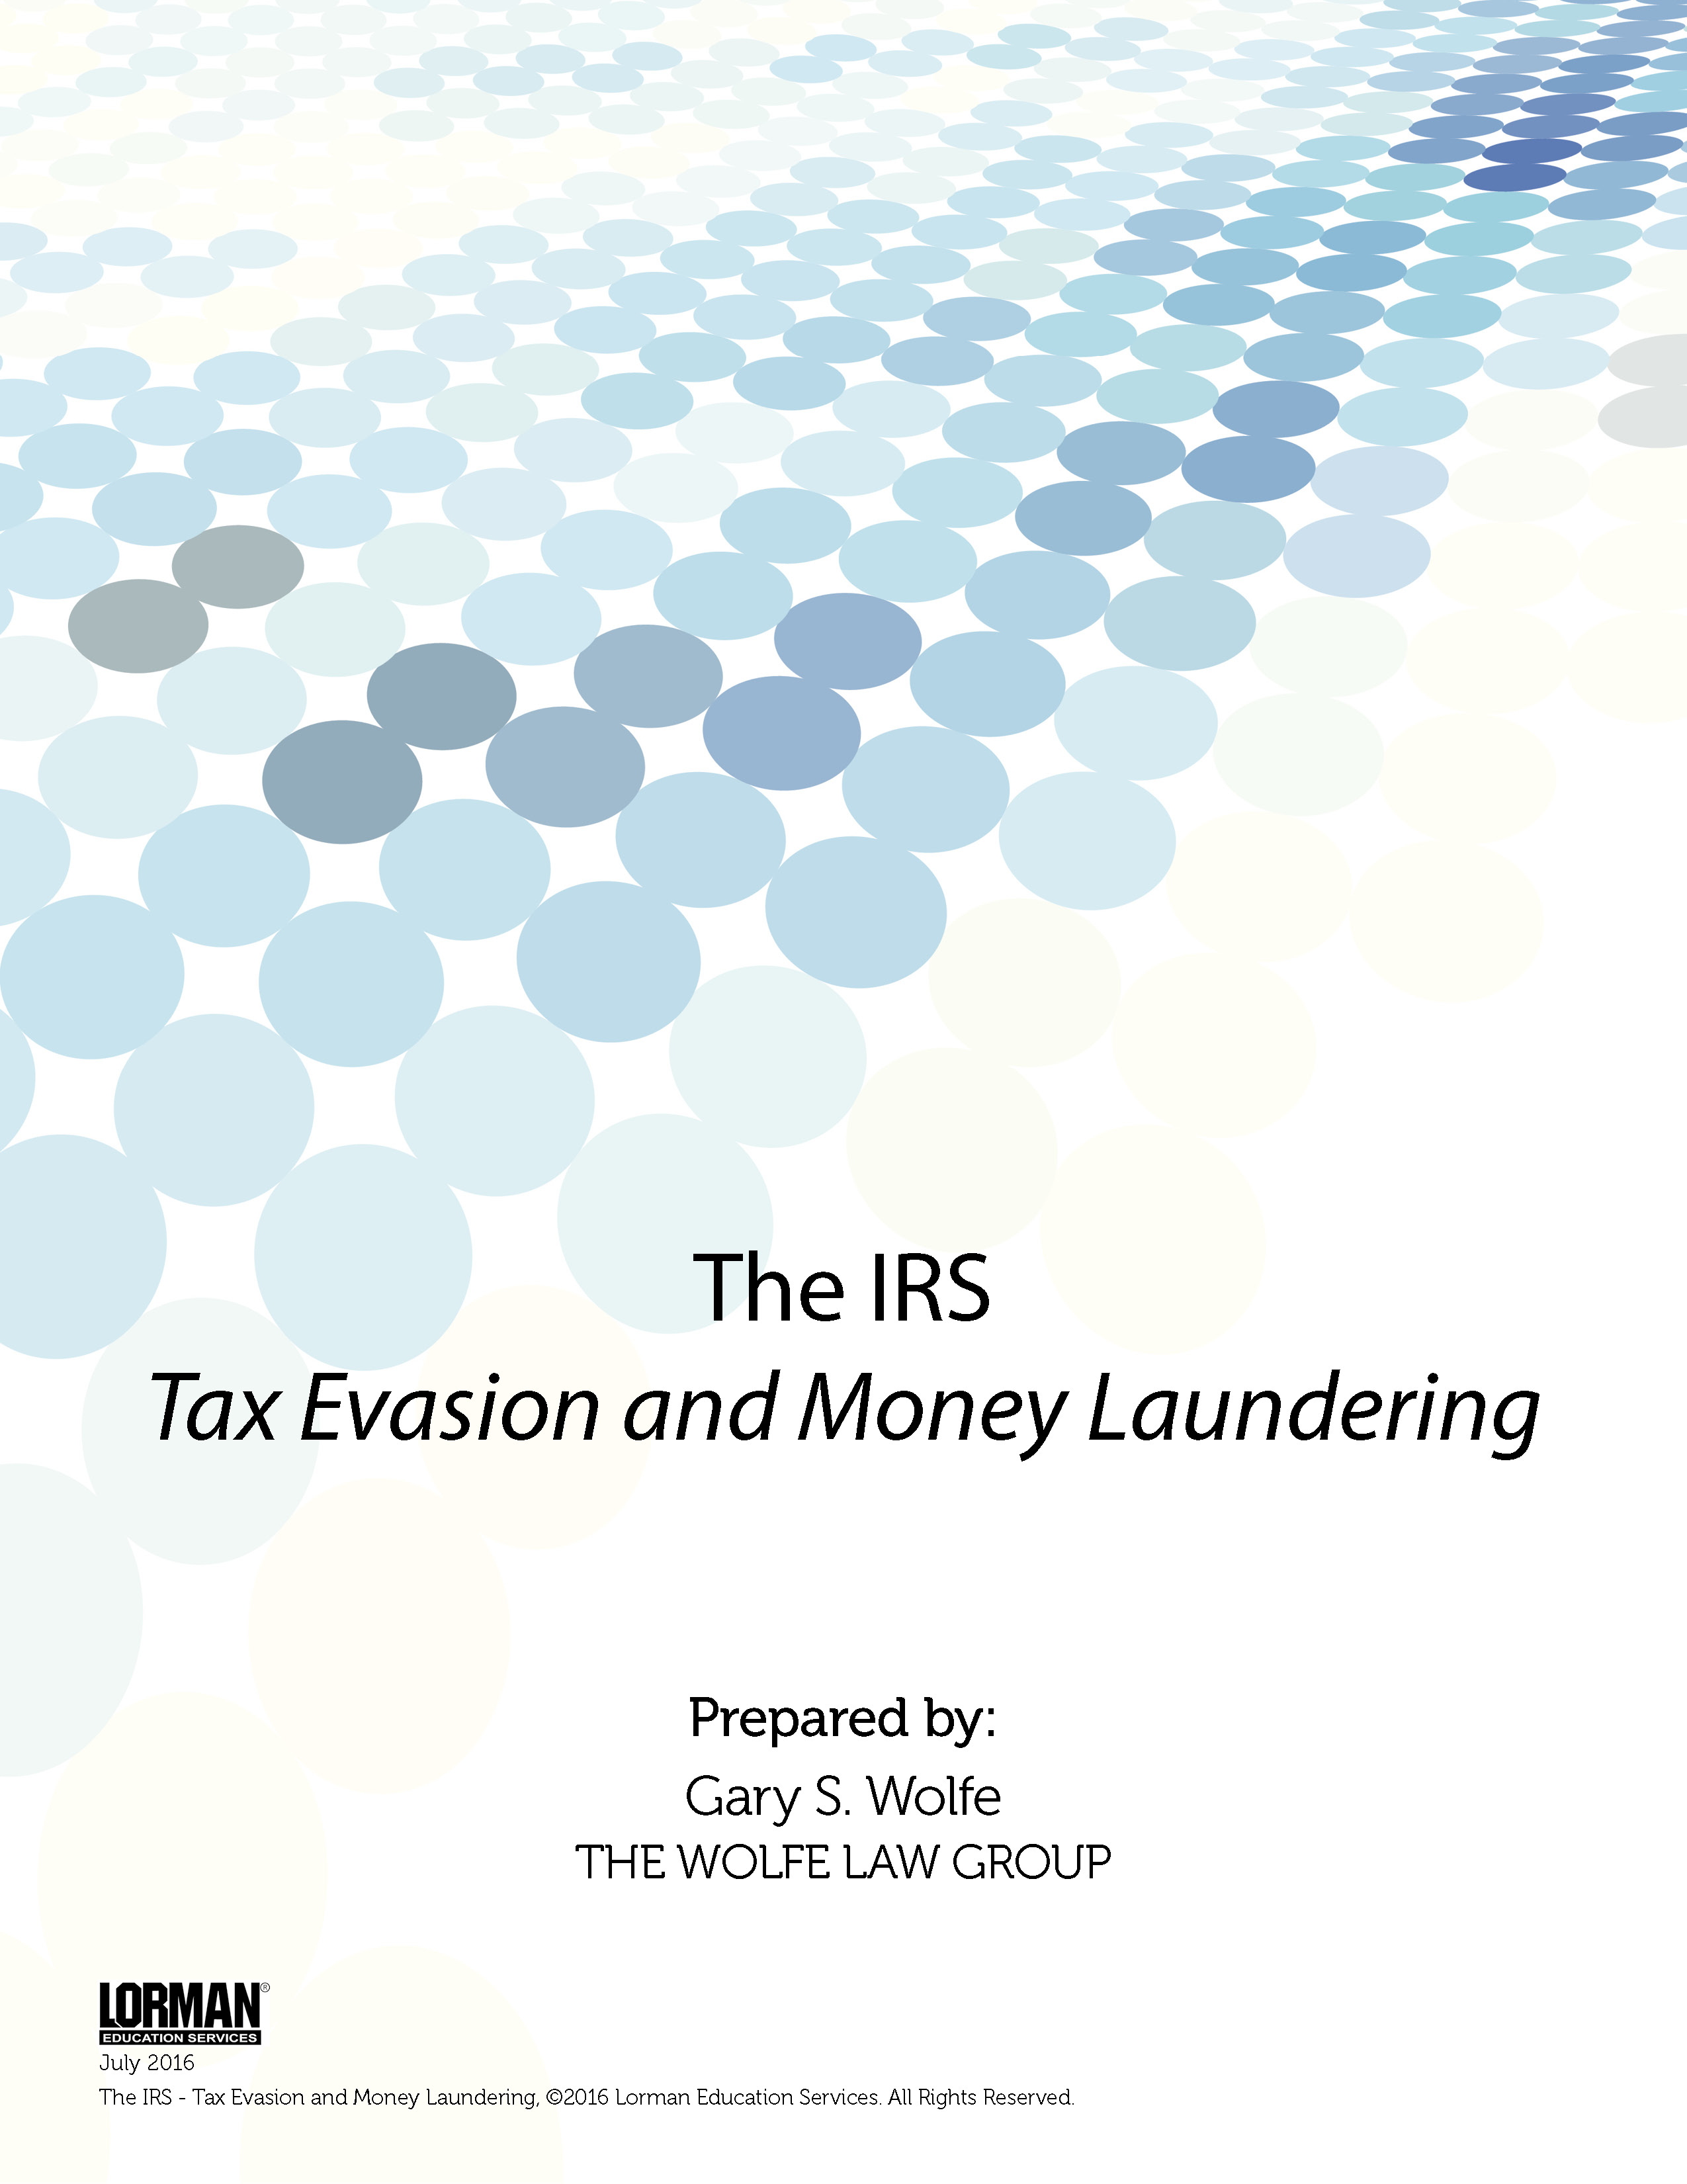 The IRS - Tax Evasion and Money Laundering